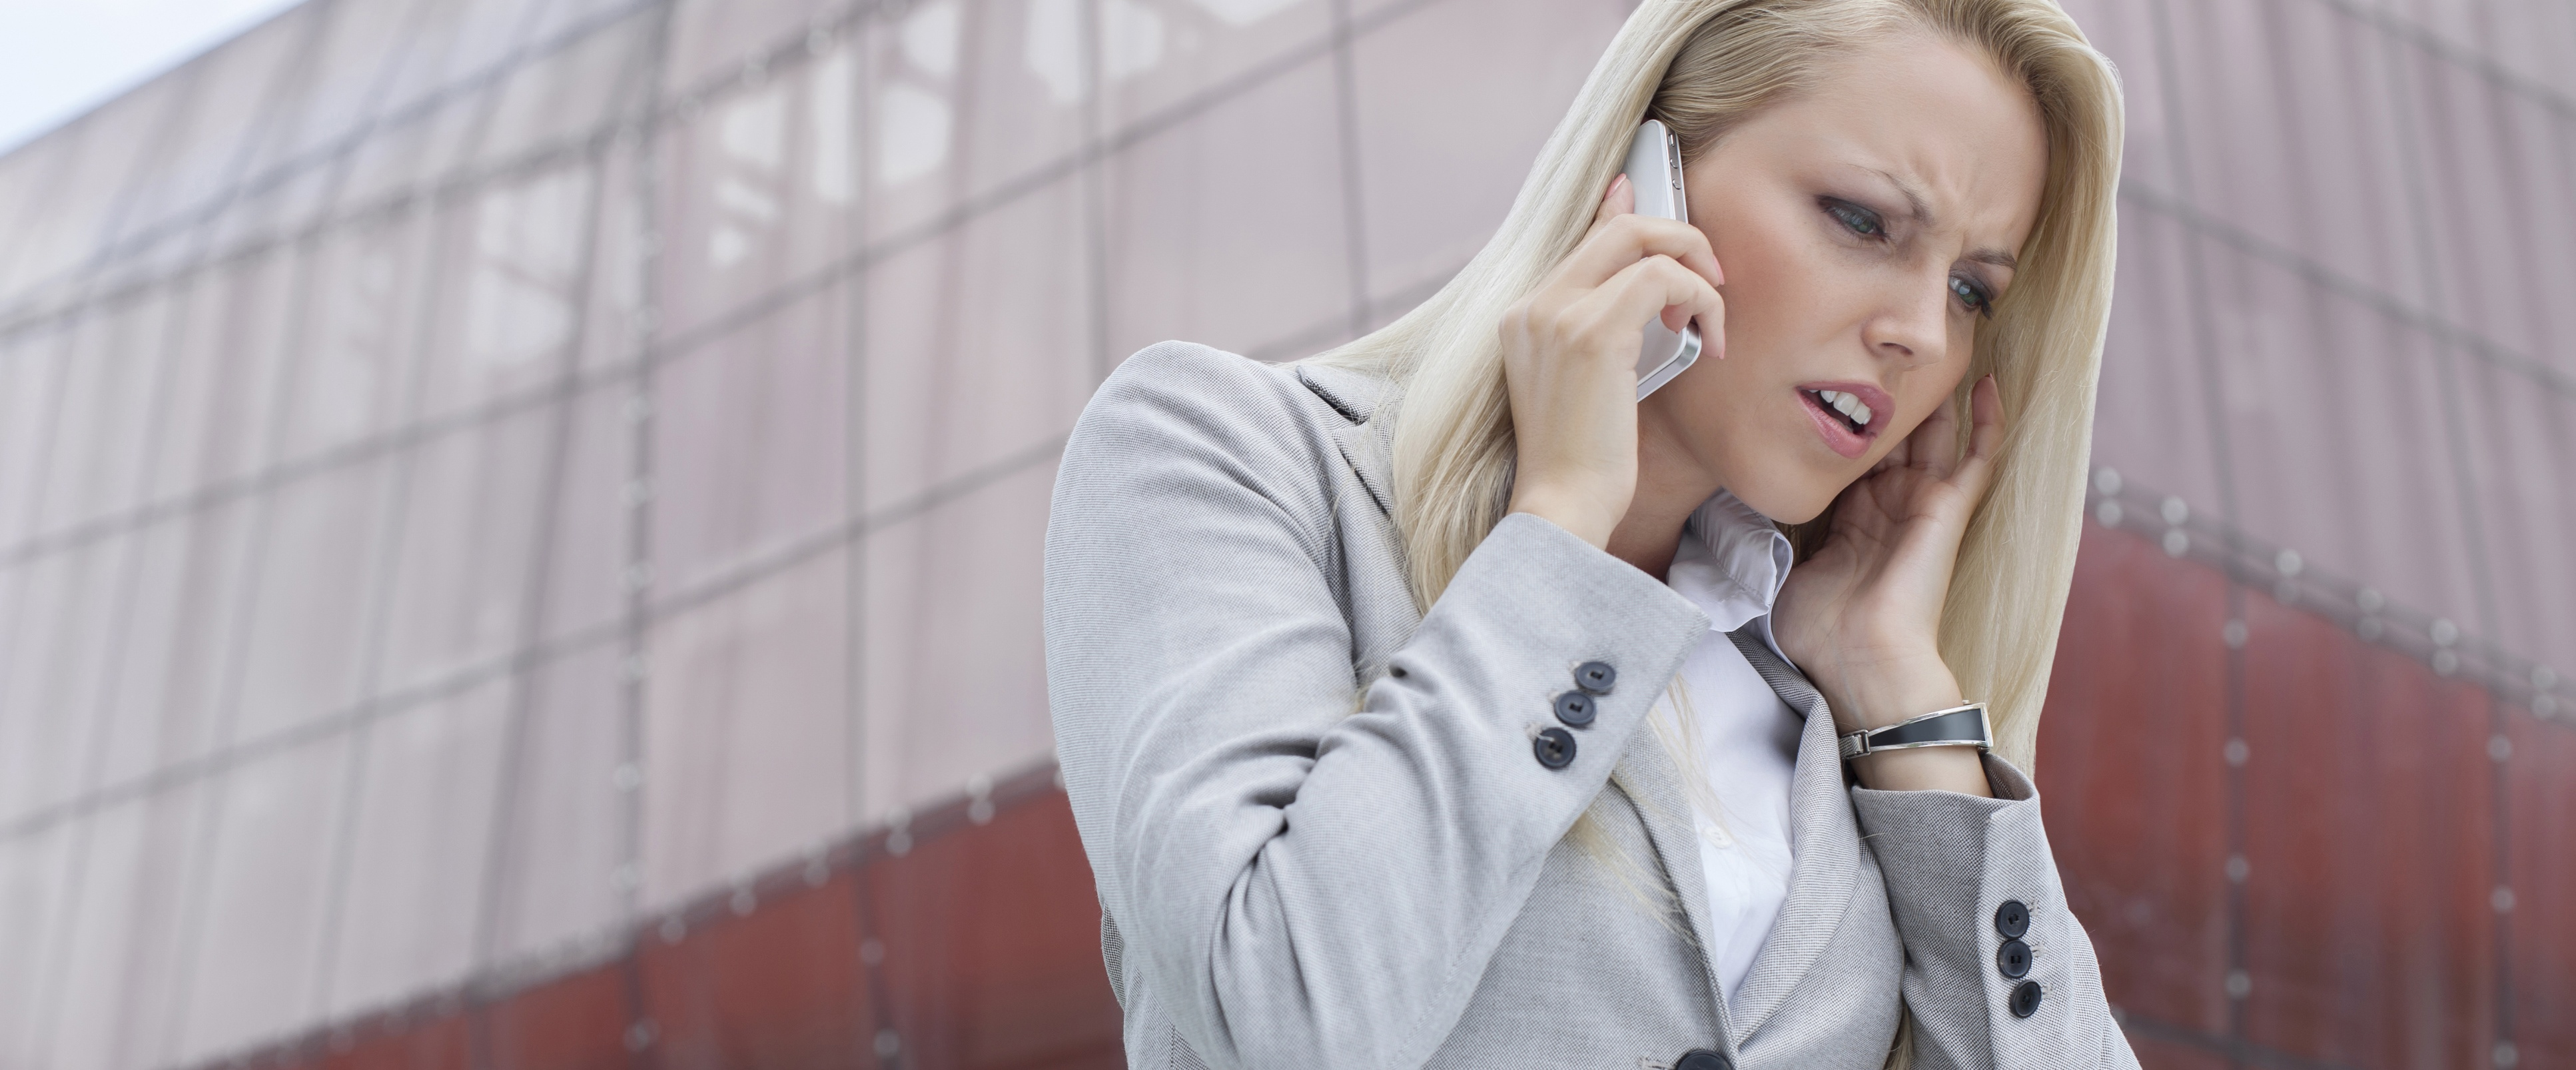 4 Ways You're Closing Your Sales Calls Wrong